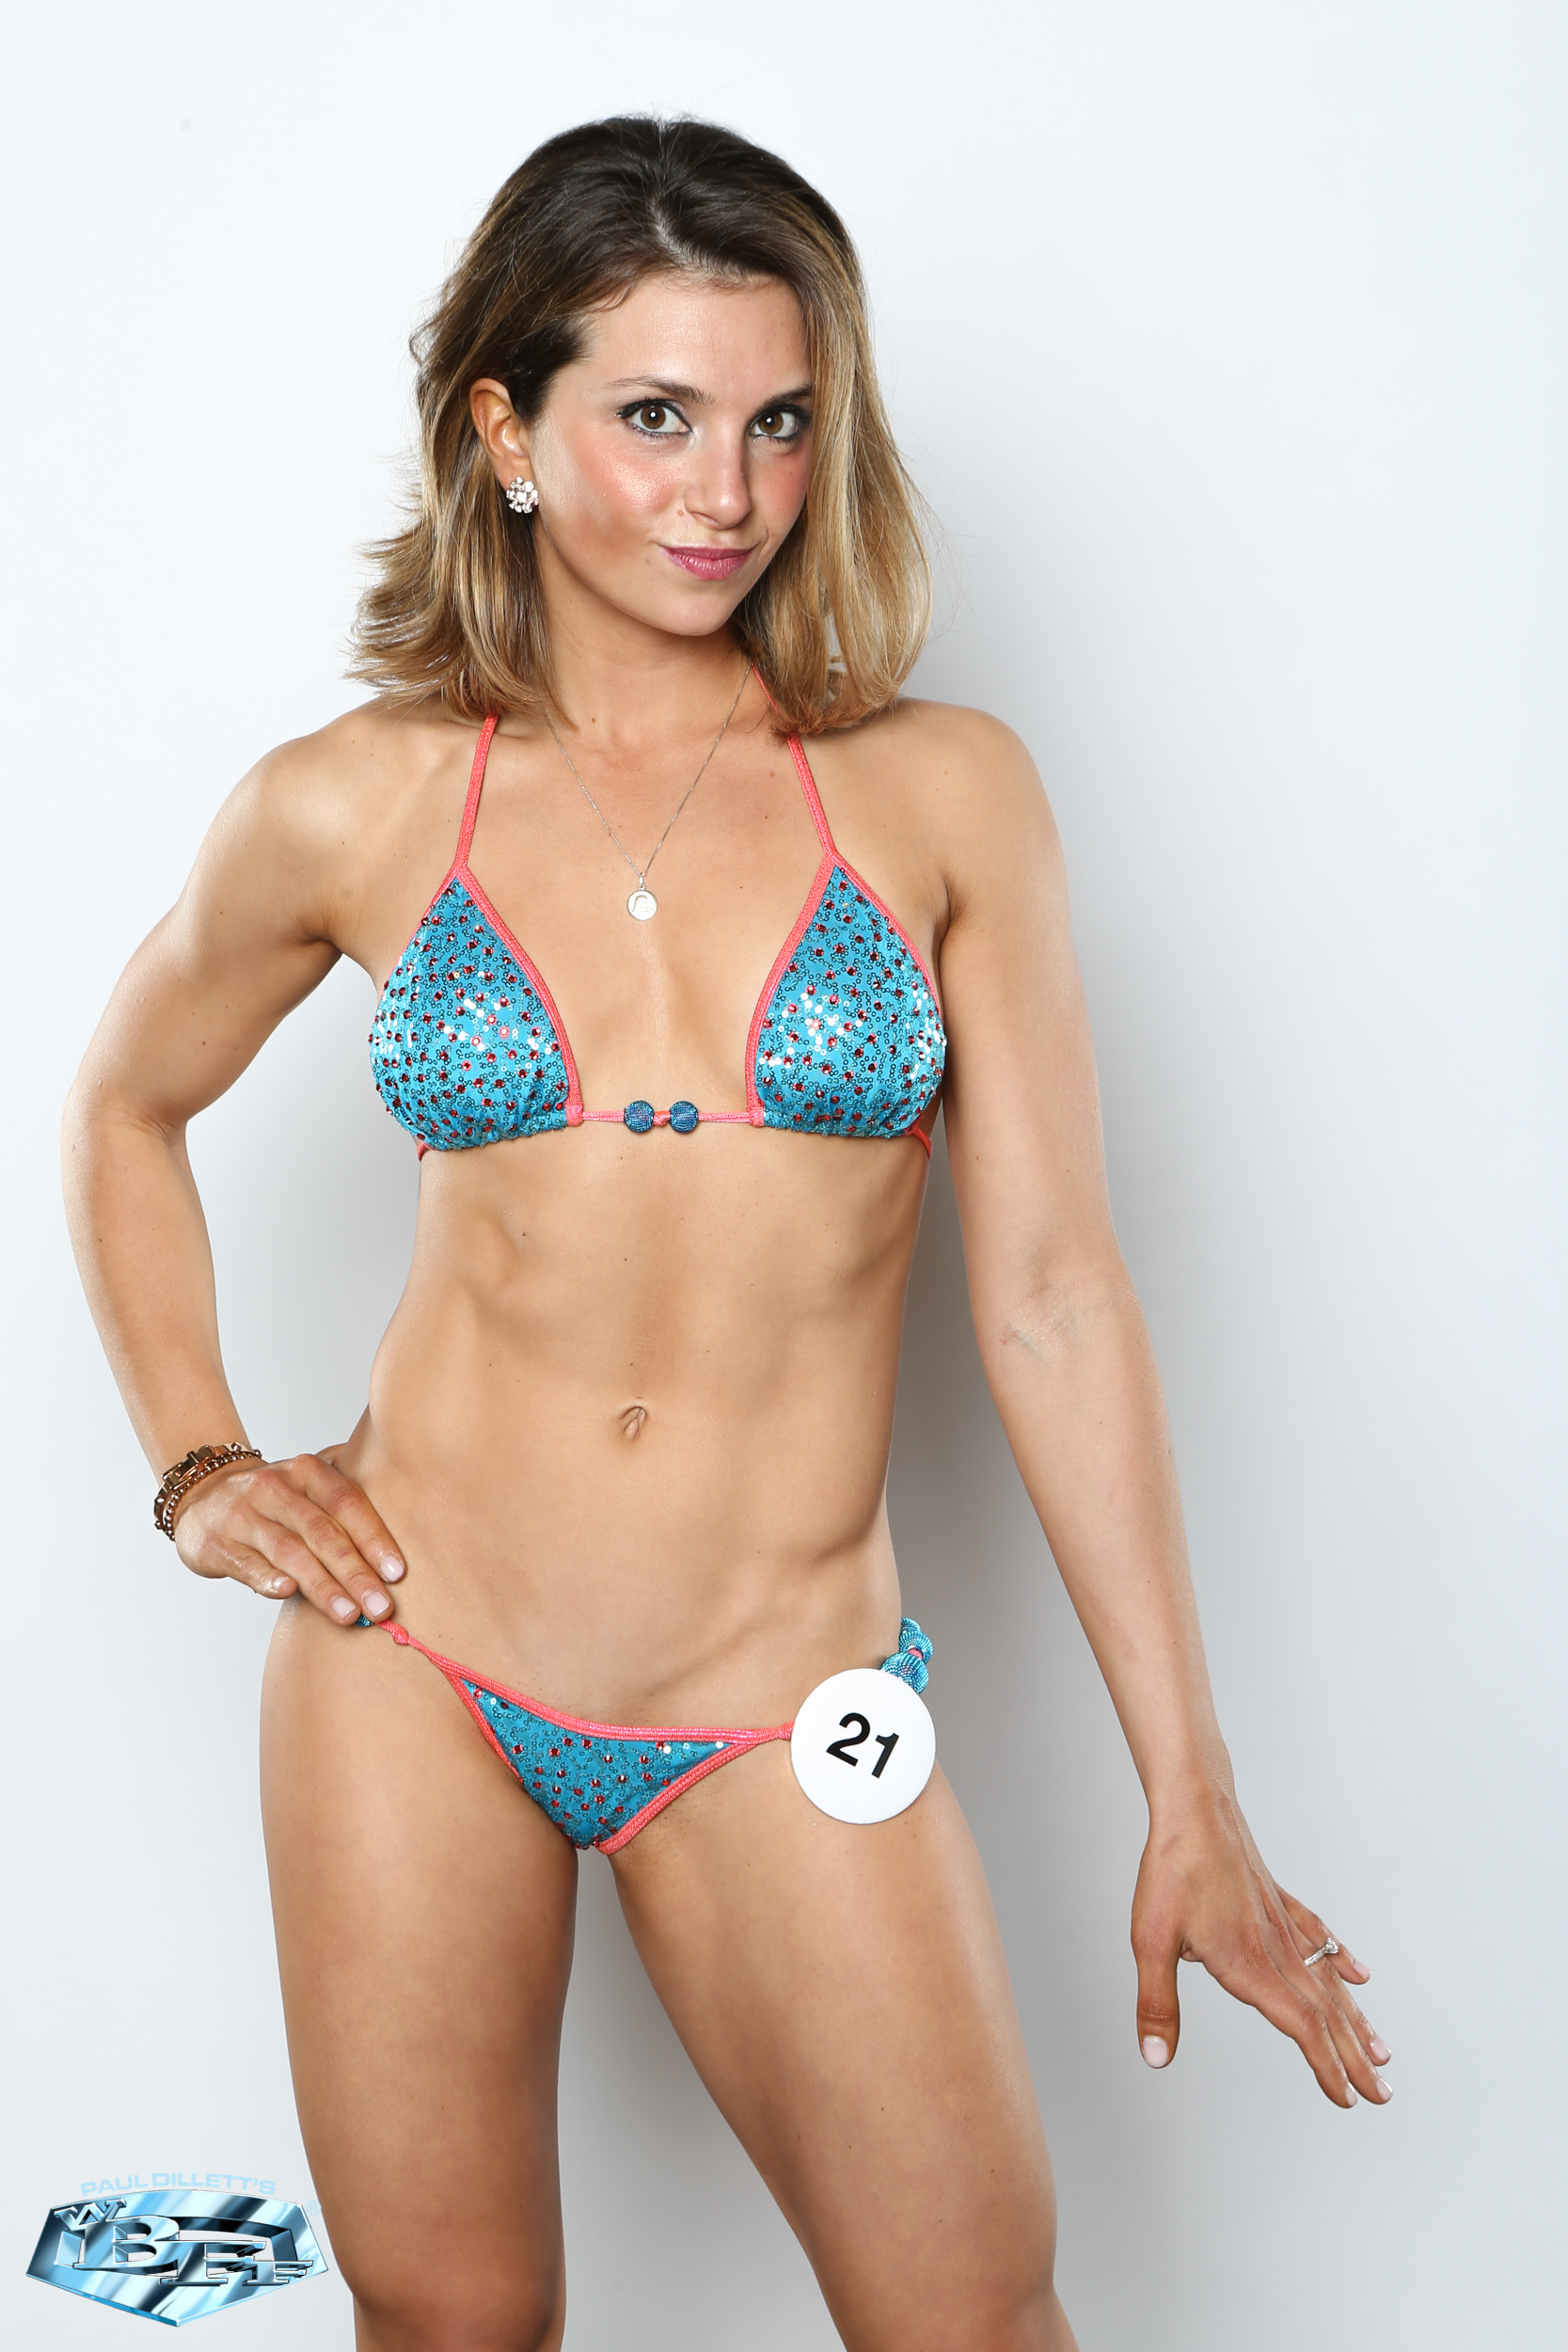 bikini competitor galleries